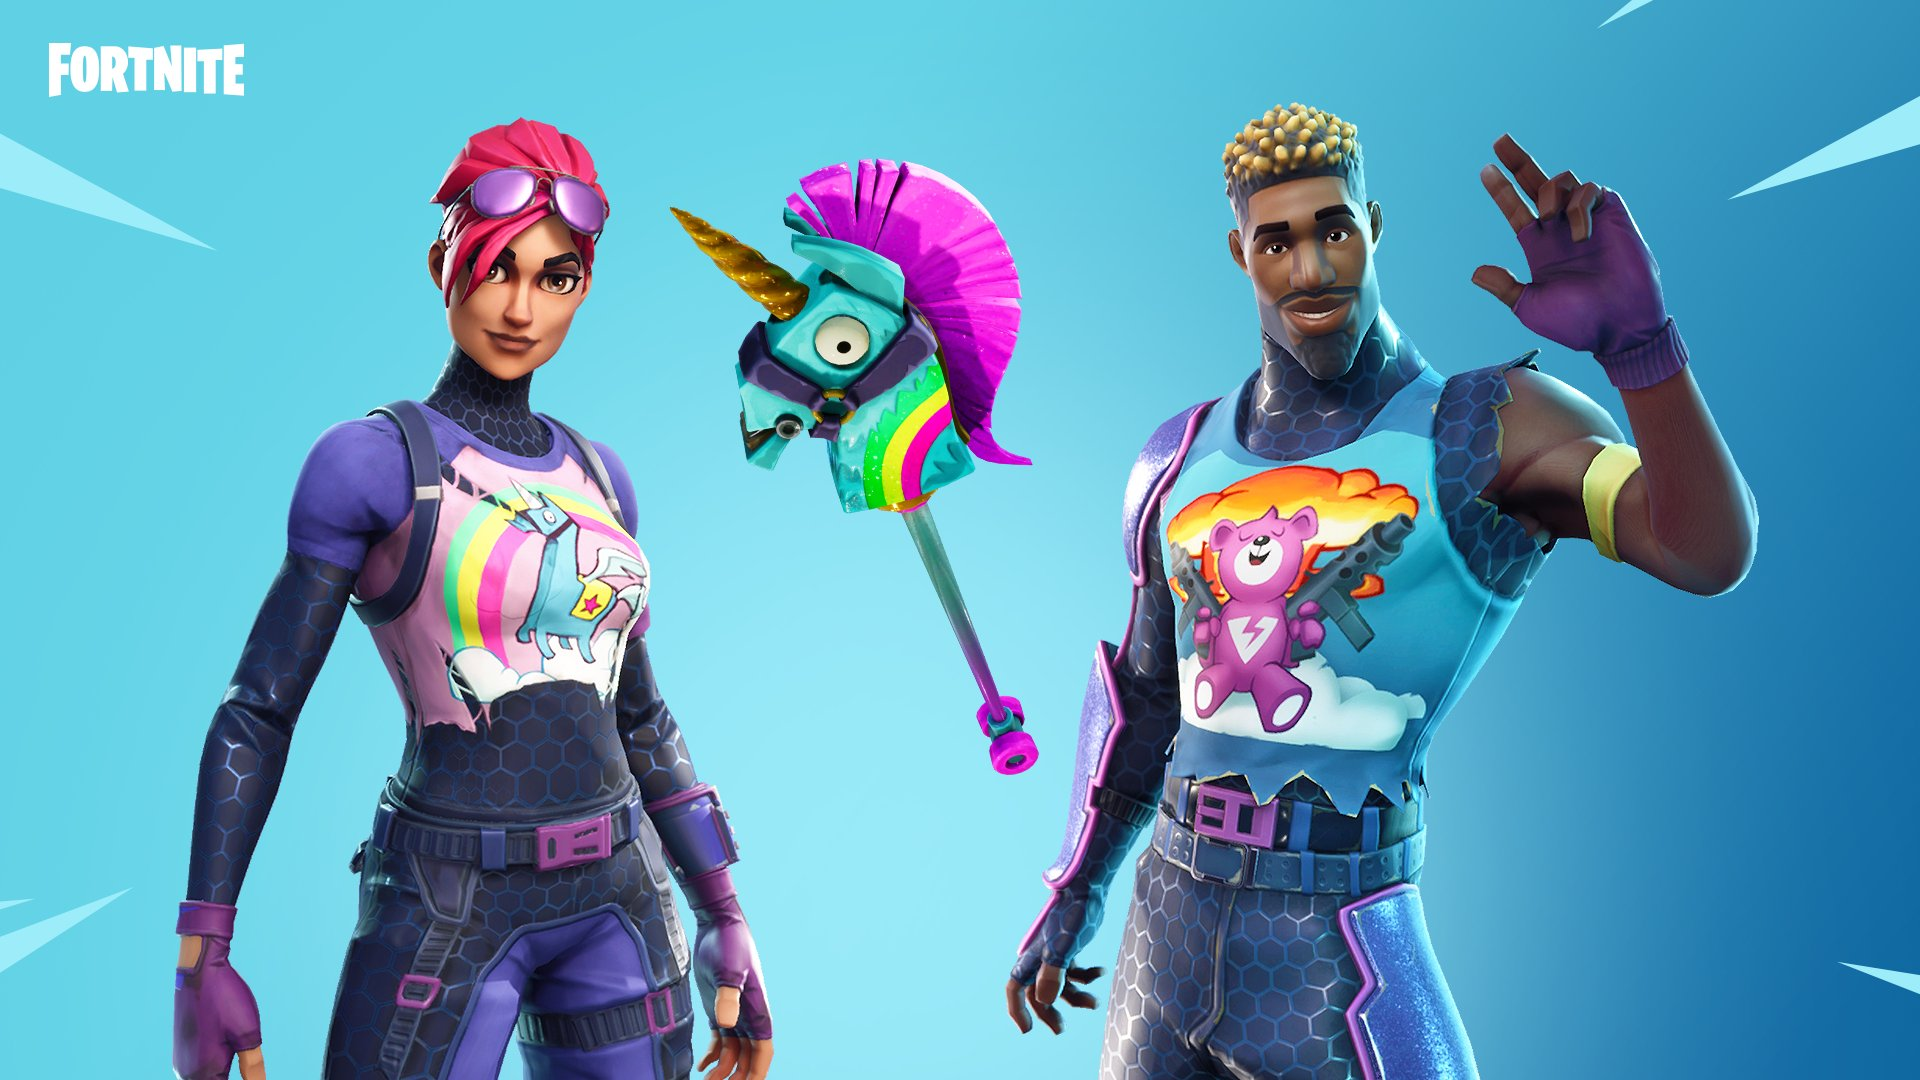 Fortnite Wallpaper Sunshine & Rainbows Set